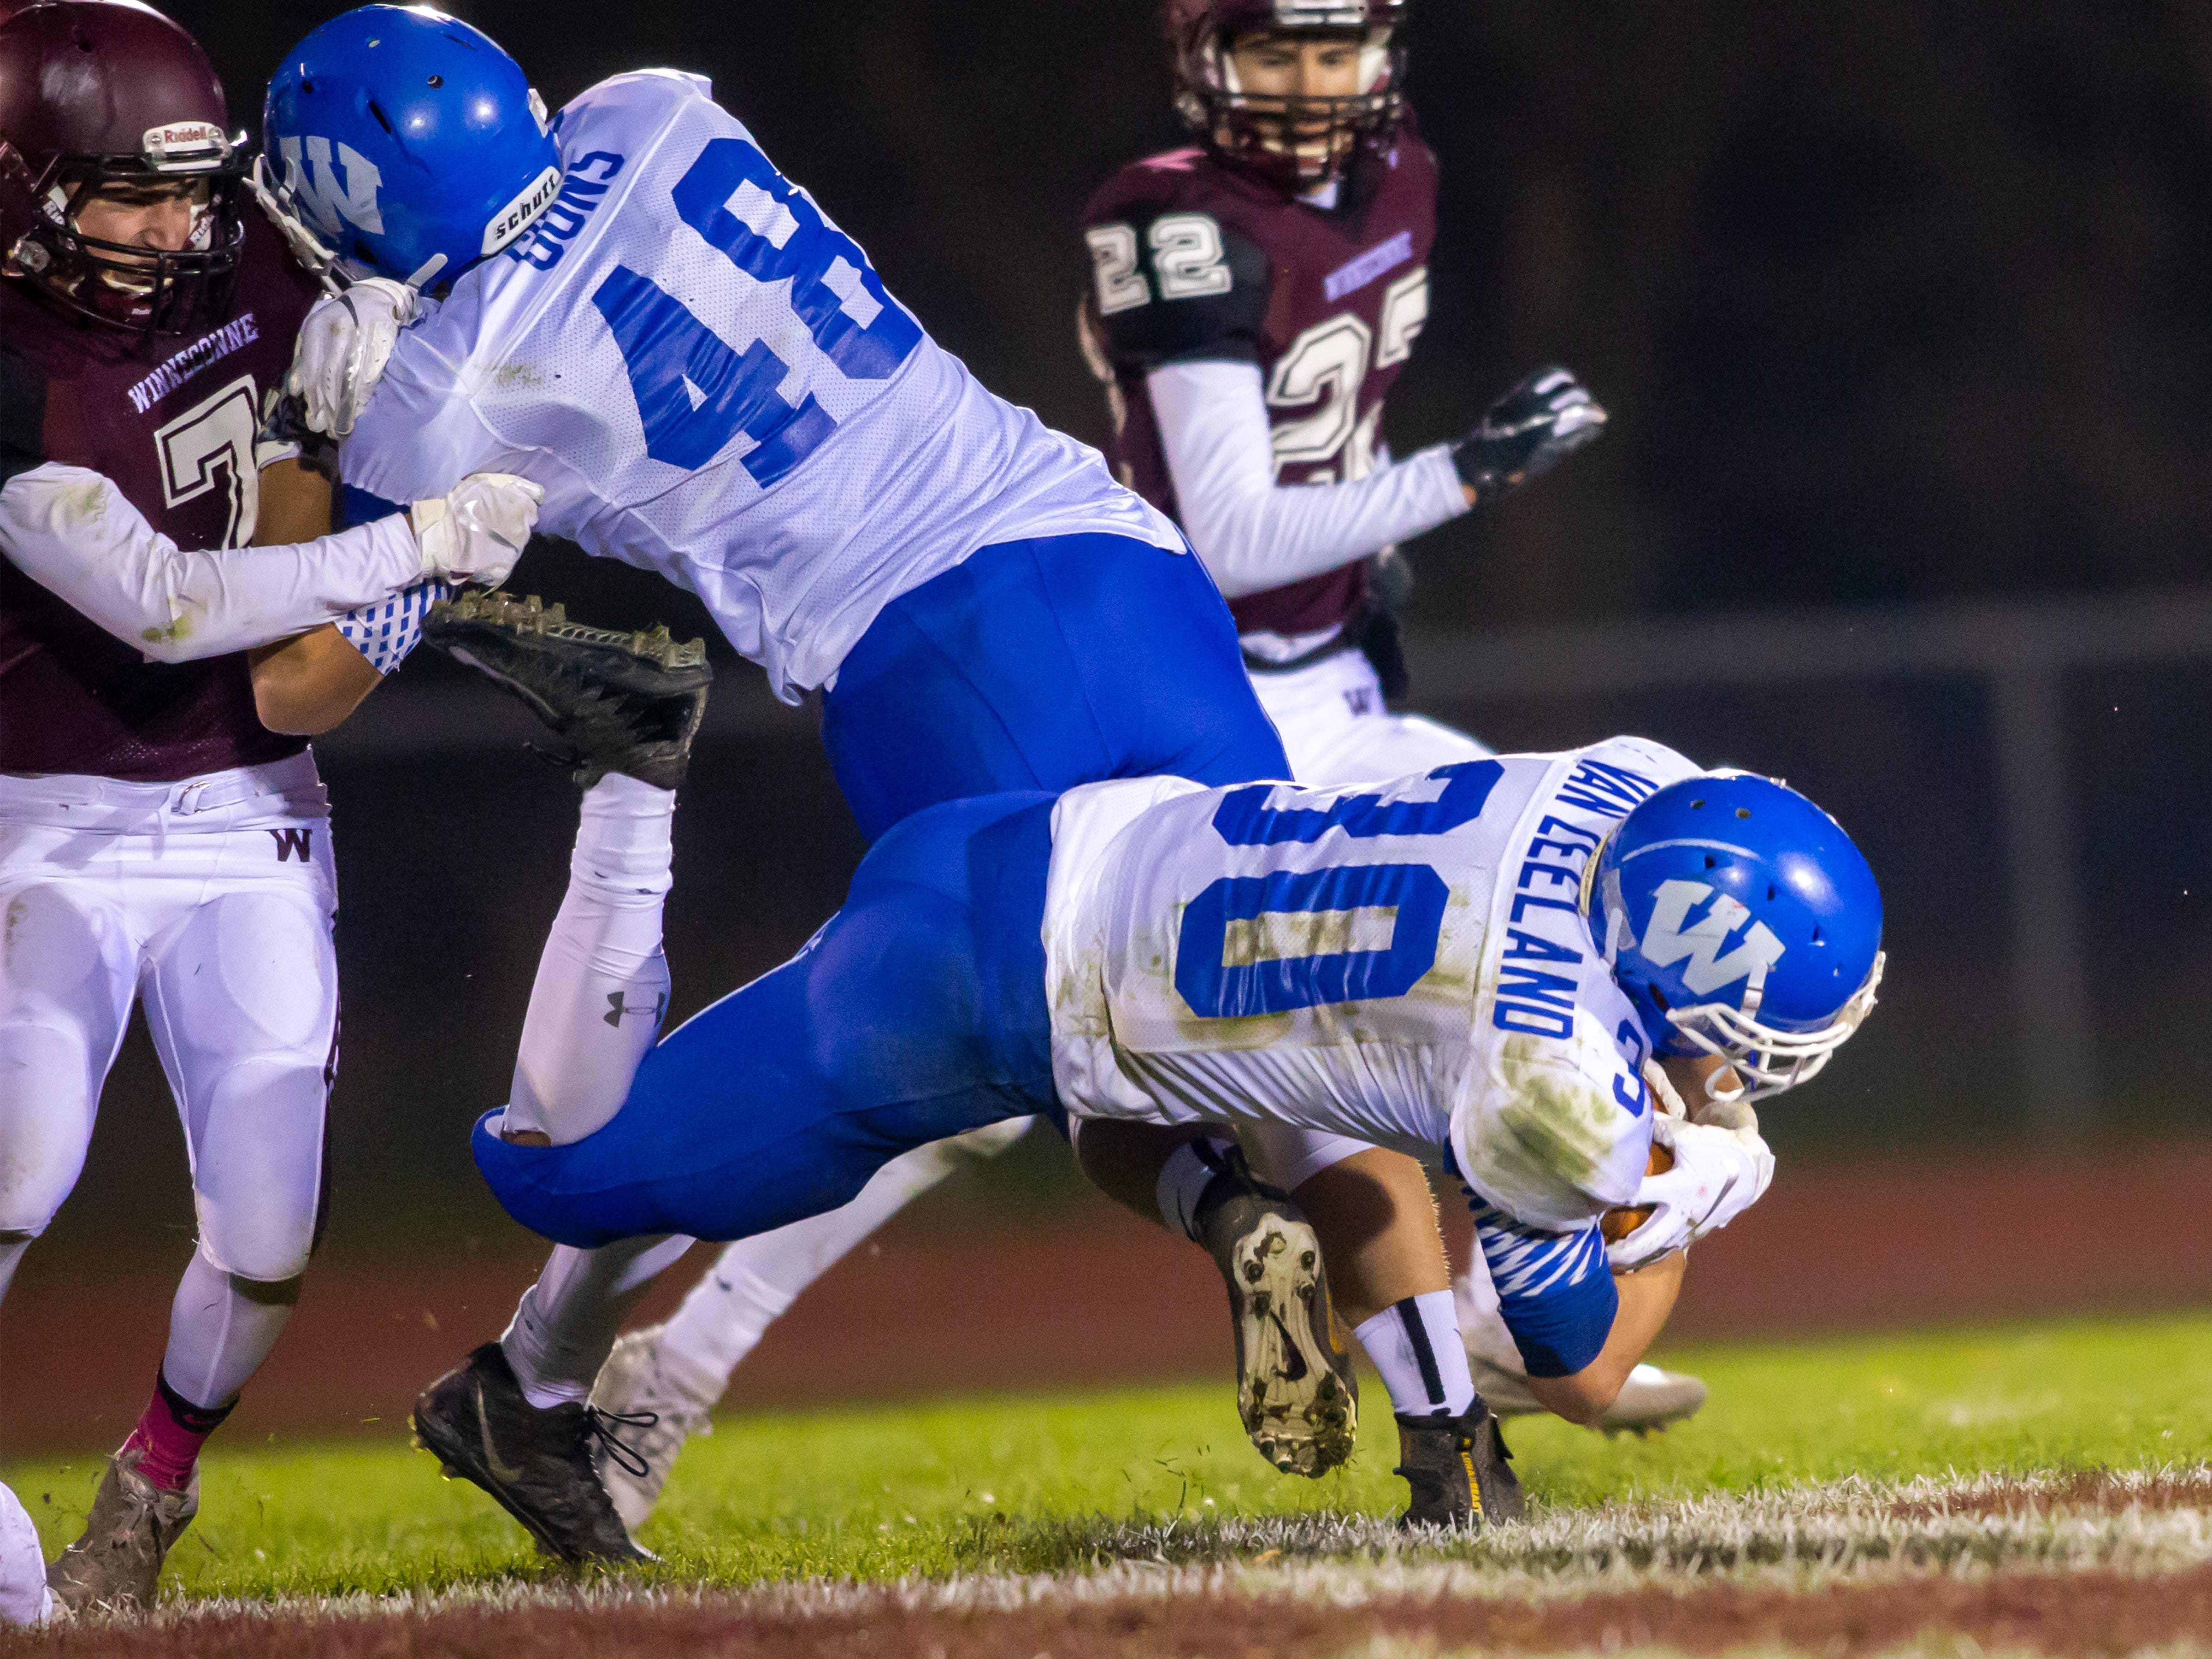 Wrightstown's Jeremy Van Zeeland drives the ball down the field playing against the Wolves at Winneconne High School on Friday, October 26, 2018.